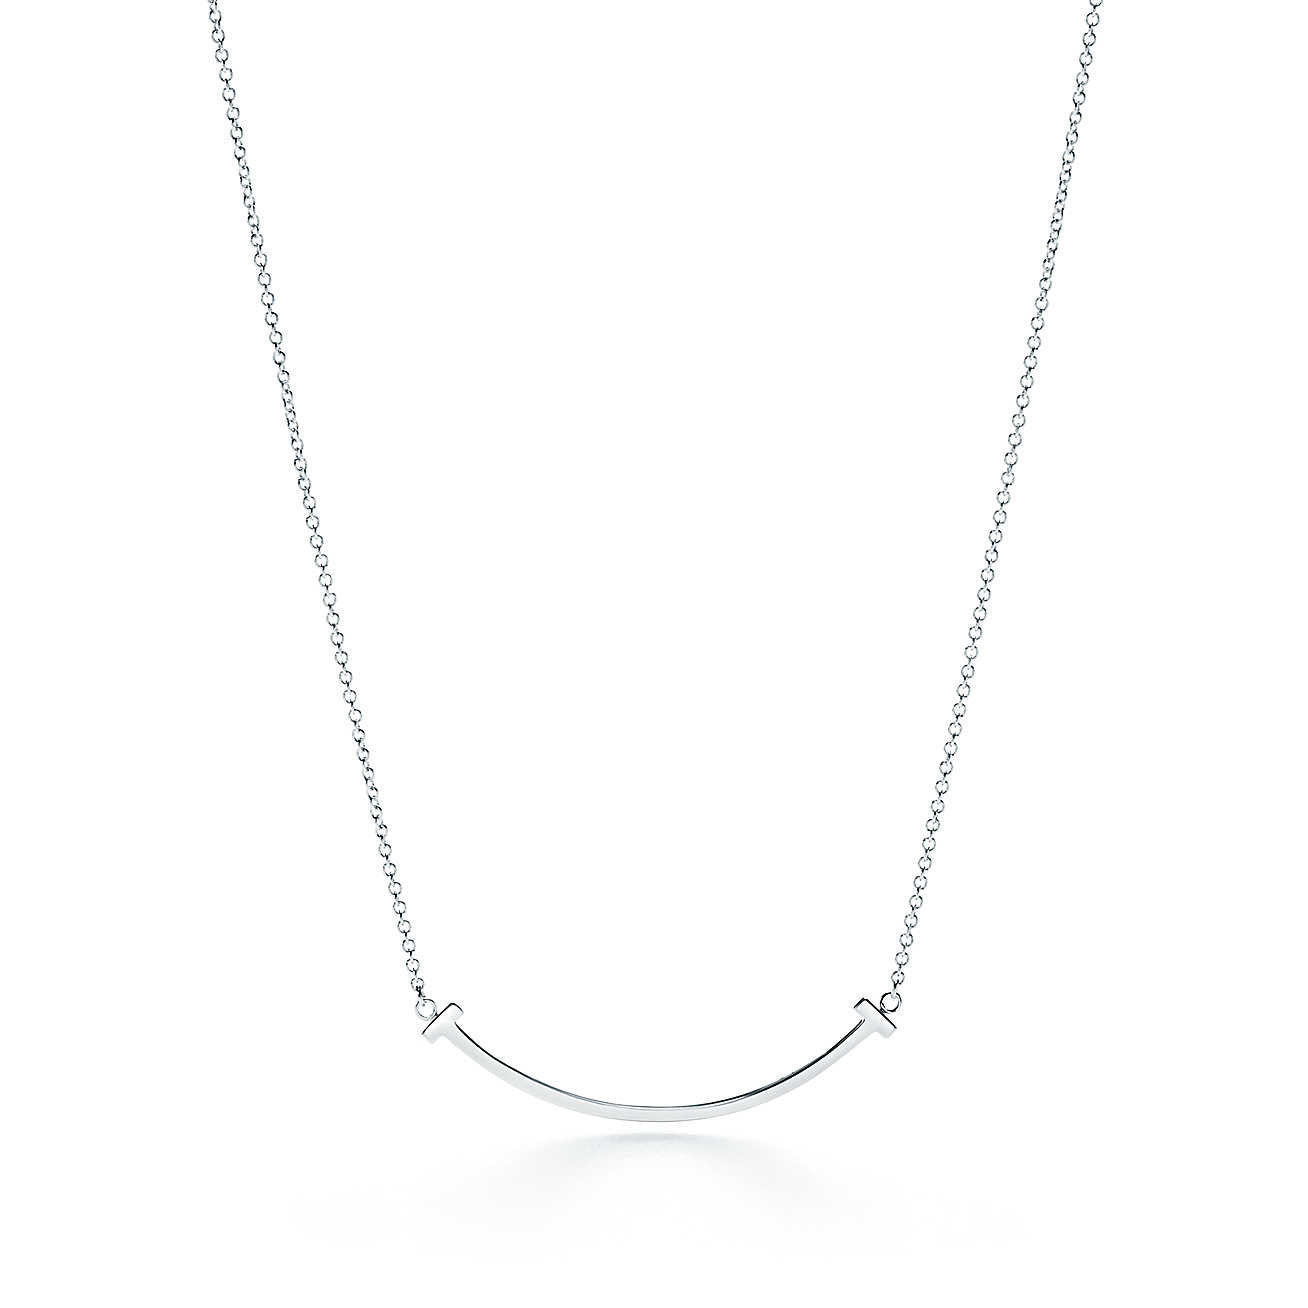 The Smile Silver Necklace - Lulugem.com